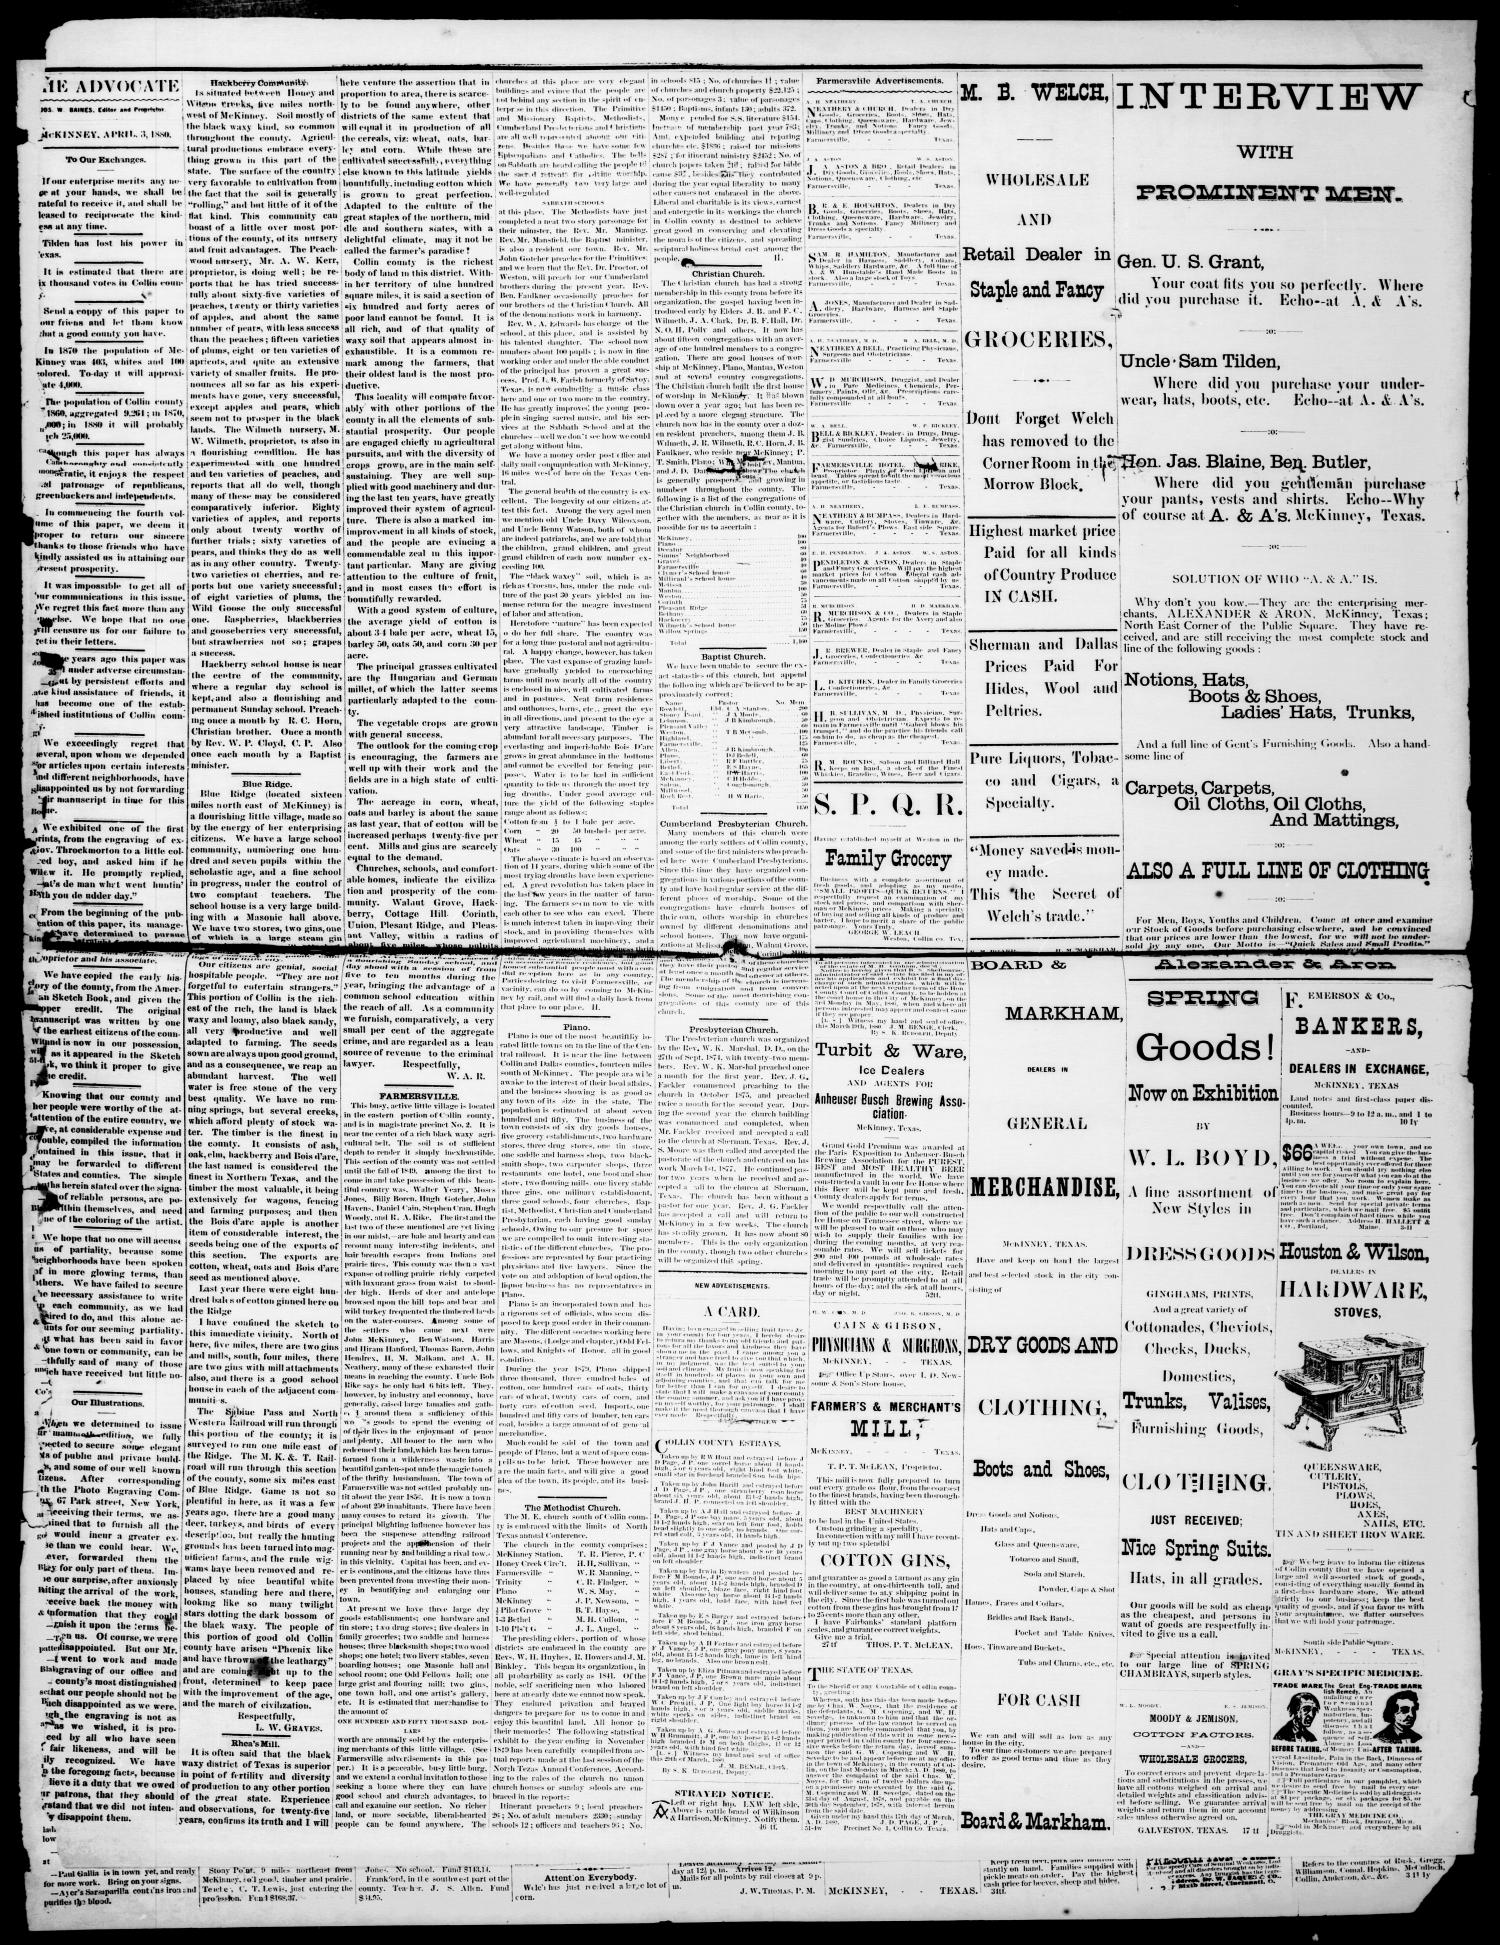 The McKinney Advocate. (McKinney, Tex.), Vol. 4, No. 1, Ed. 1 Saturday, April 3, 1880                                                                                                      [Sequence #]: 2 of 4